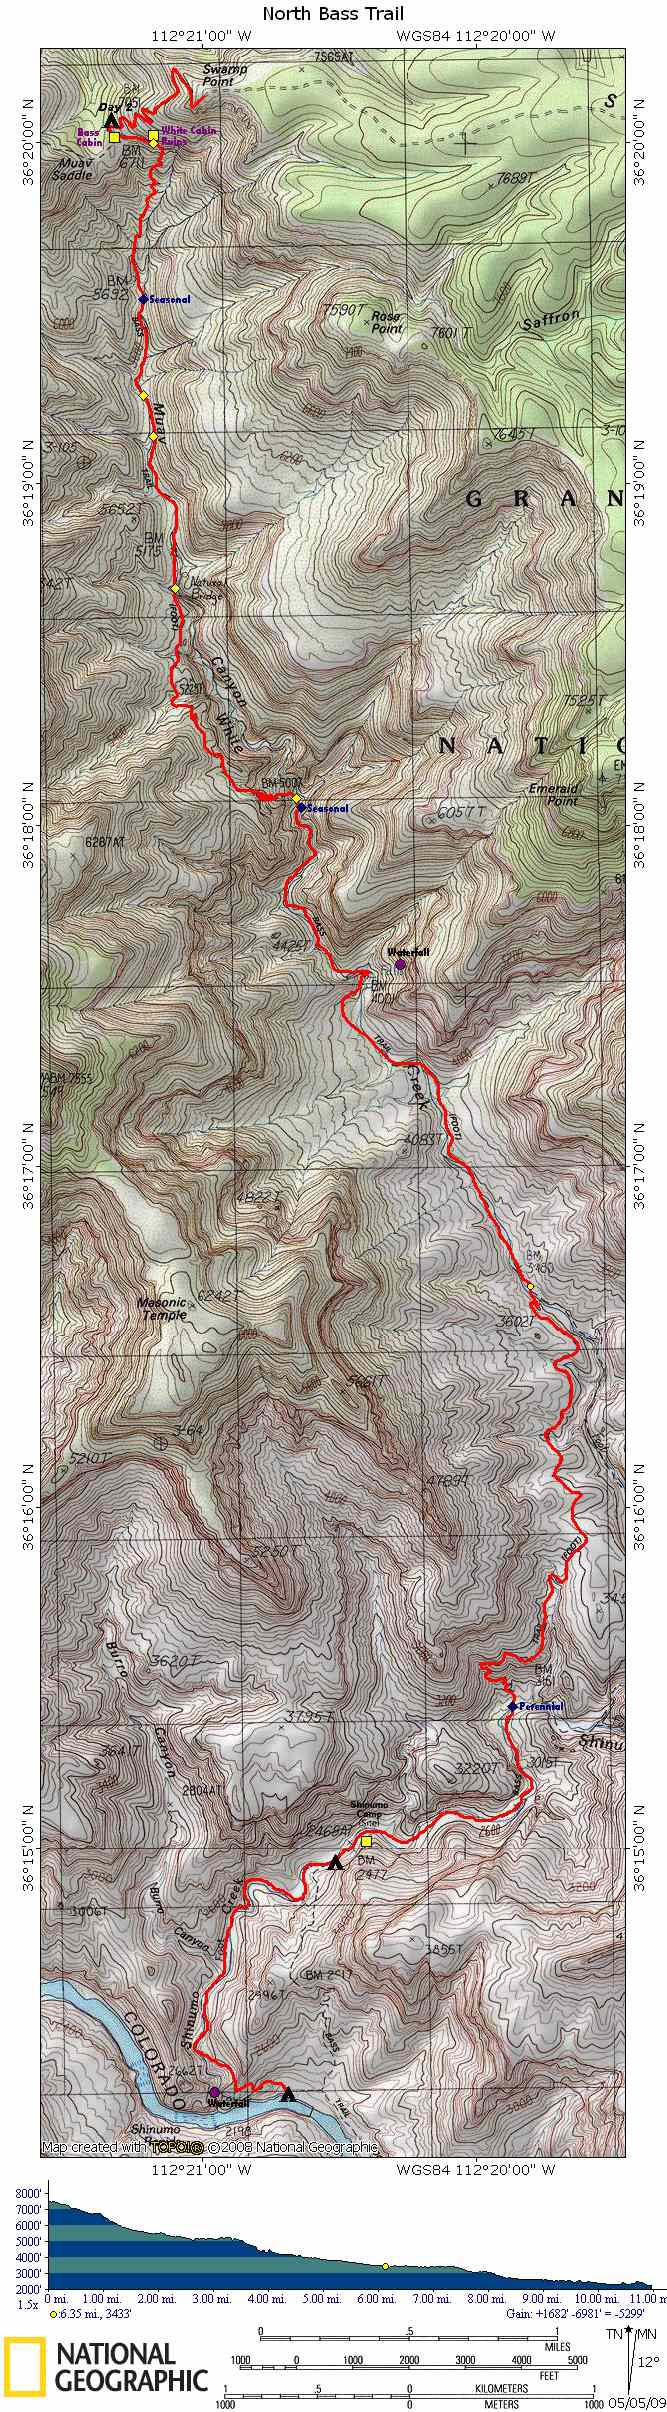 Map of North Bass Trail with Elevation Profile